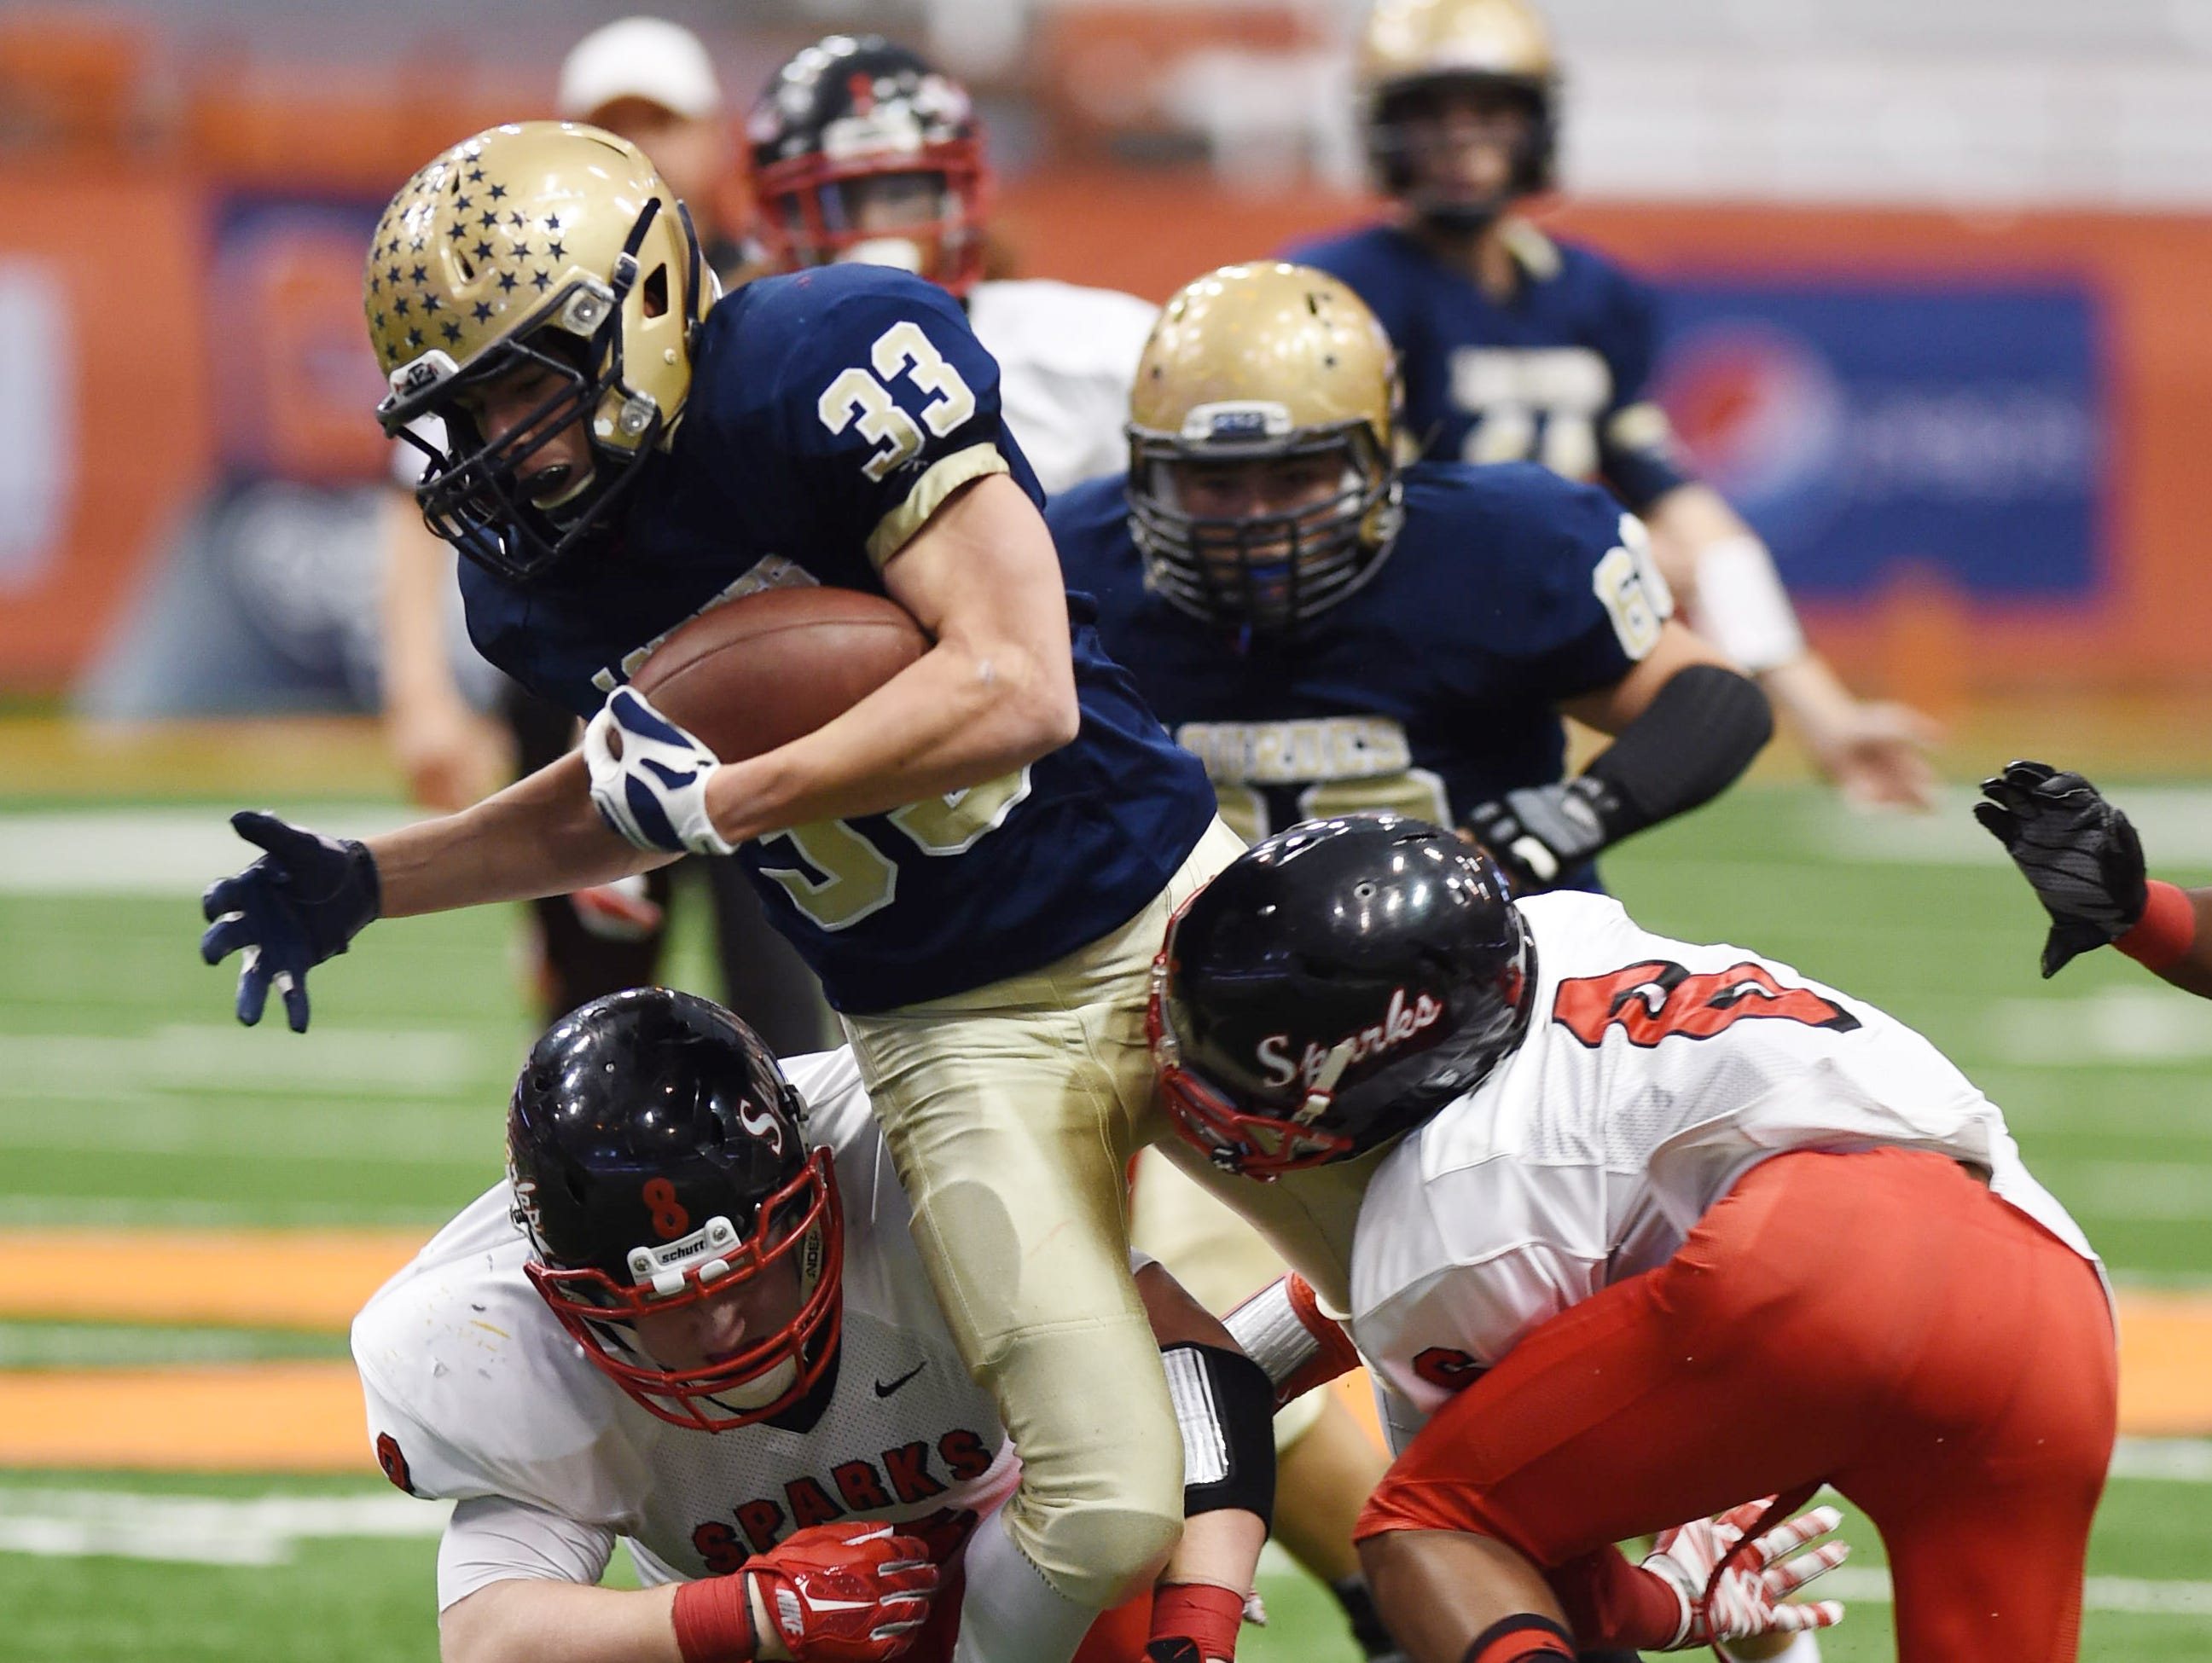 Lourdes' Christopher Salotto gets tackled by South Park's (from left) Nick Schaefer and Mike Mcdonald during the New York State Championship final in Syracuse on Friday.